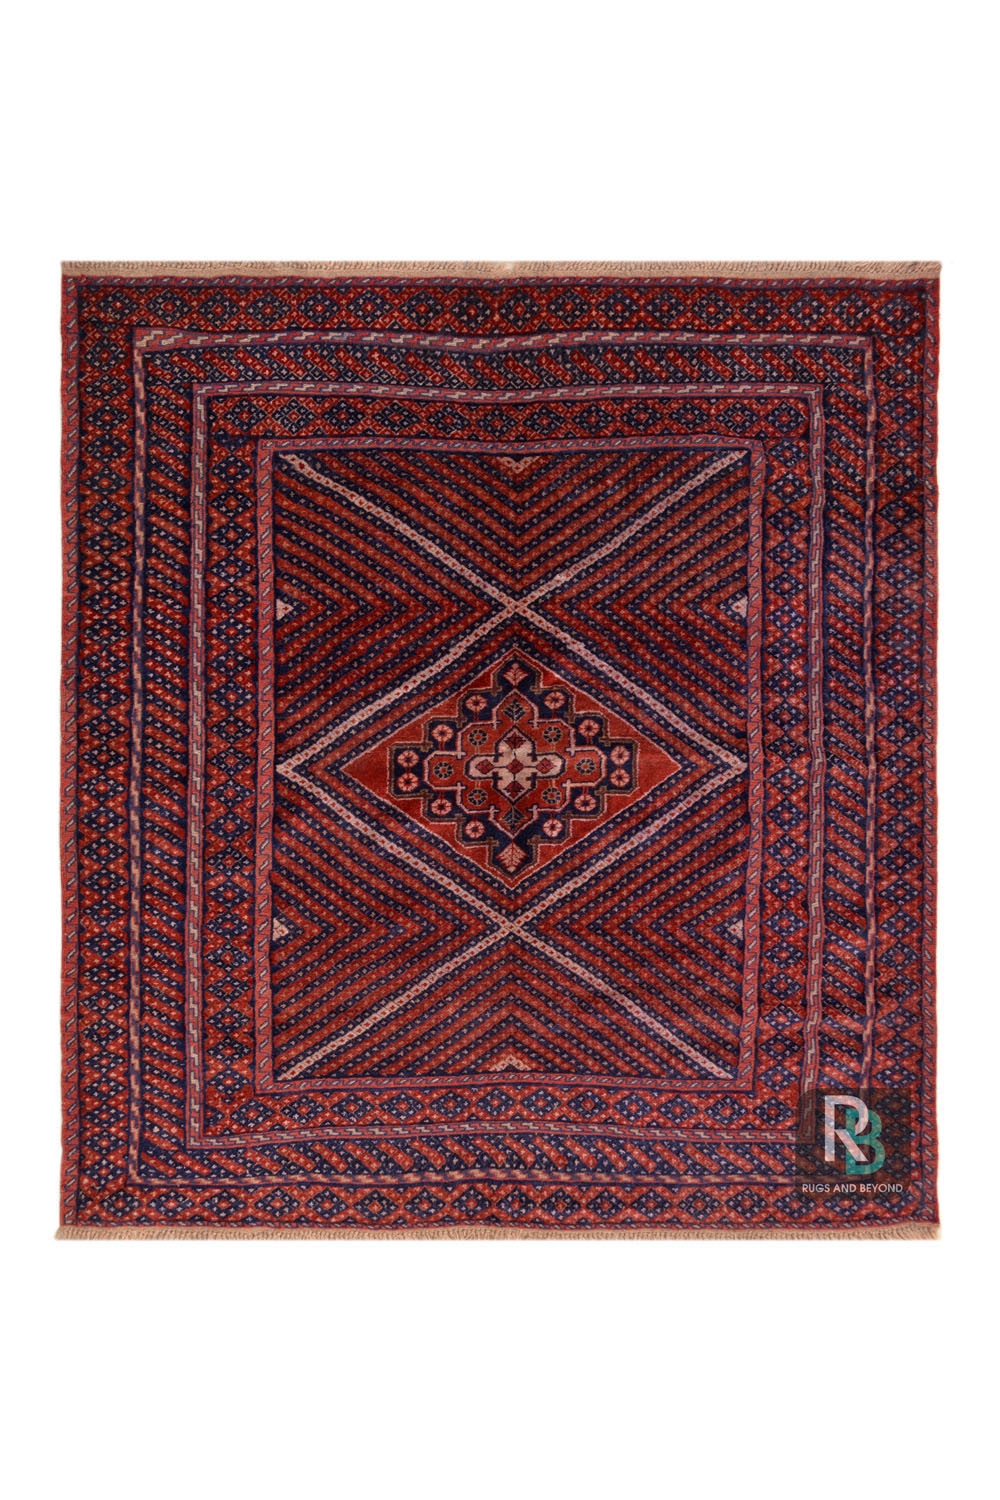 Buy Kilim Medallion turkish kilim rugs to add coziness to your home